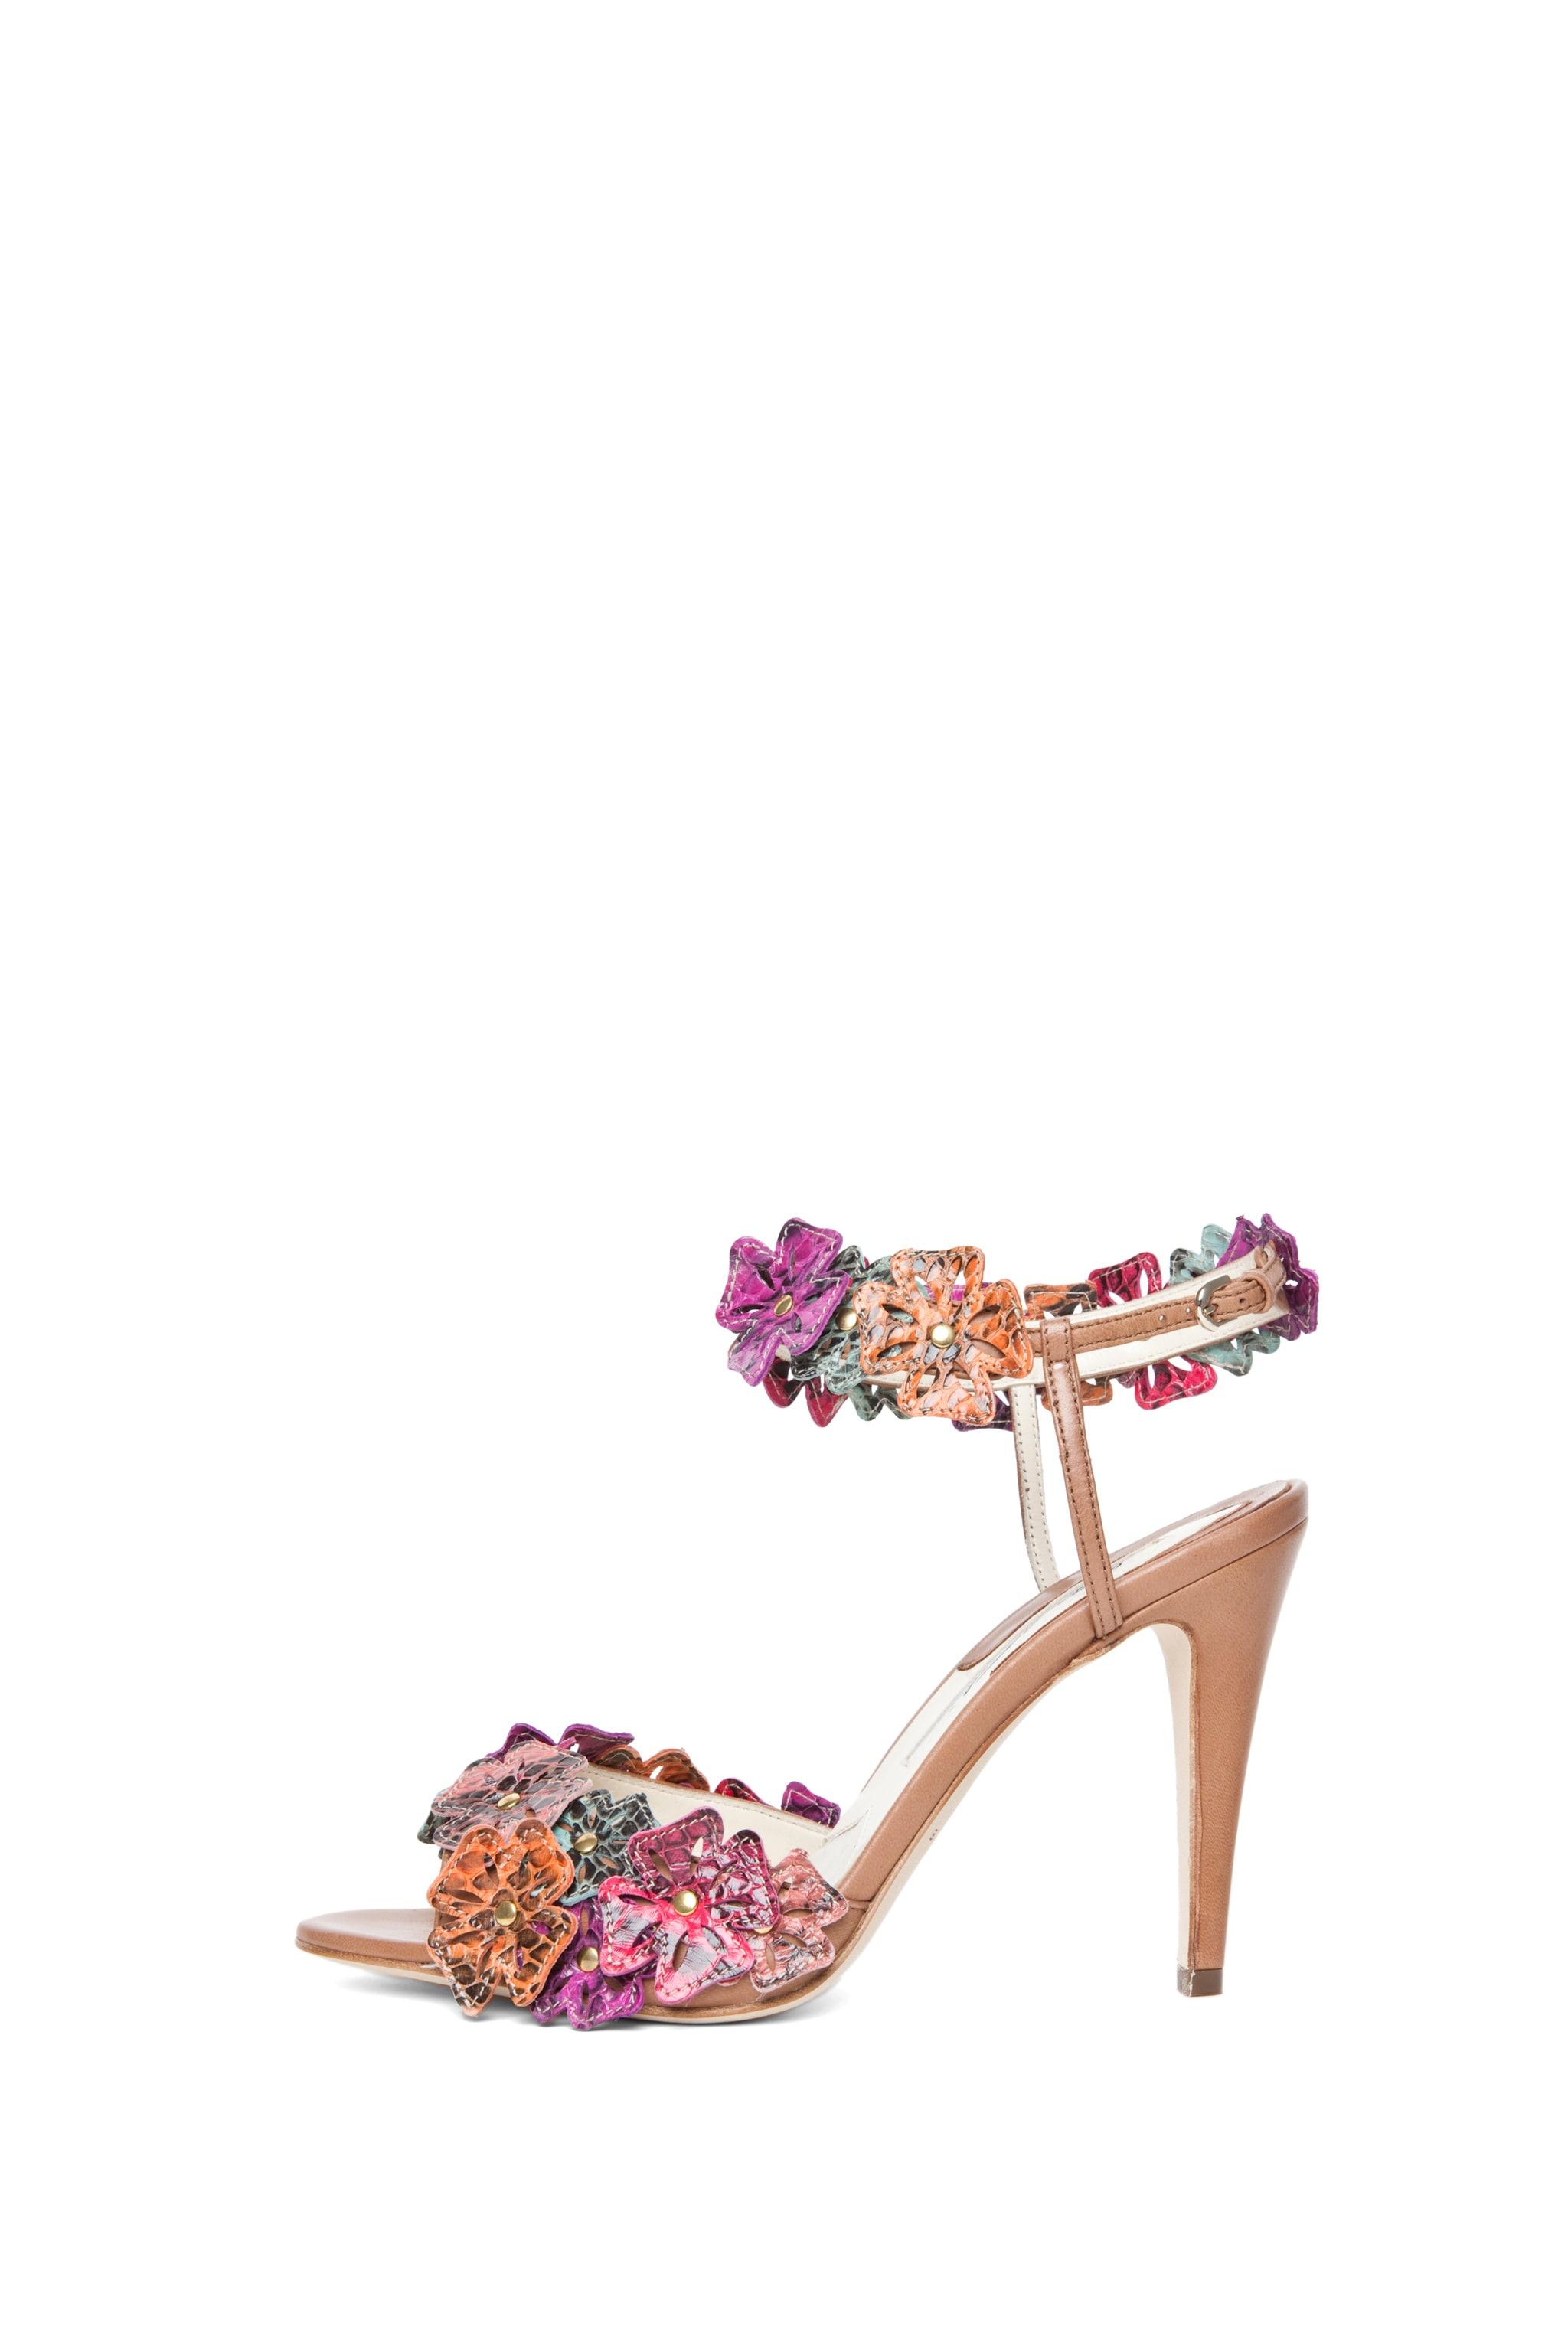 Image 1 of Brian Atwood Coraline Leather Flower Sandals in Snake Multi